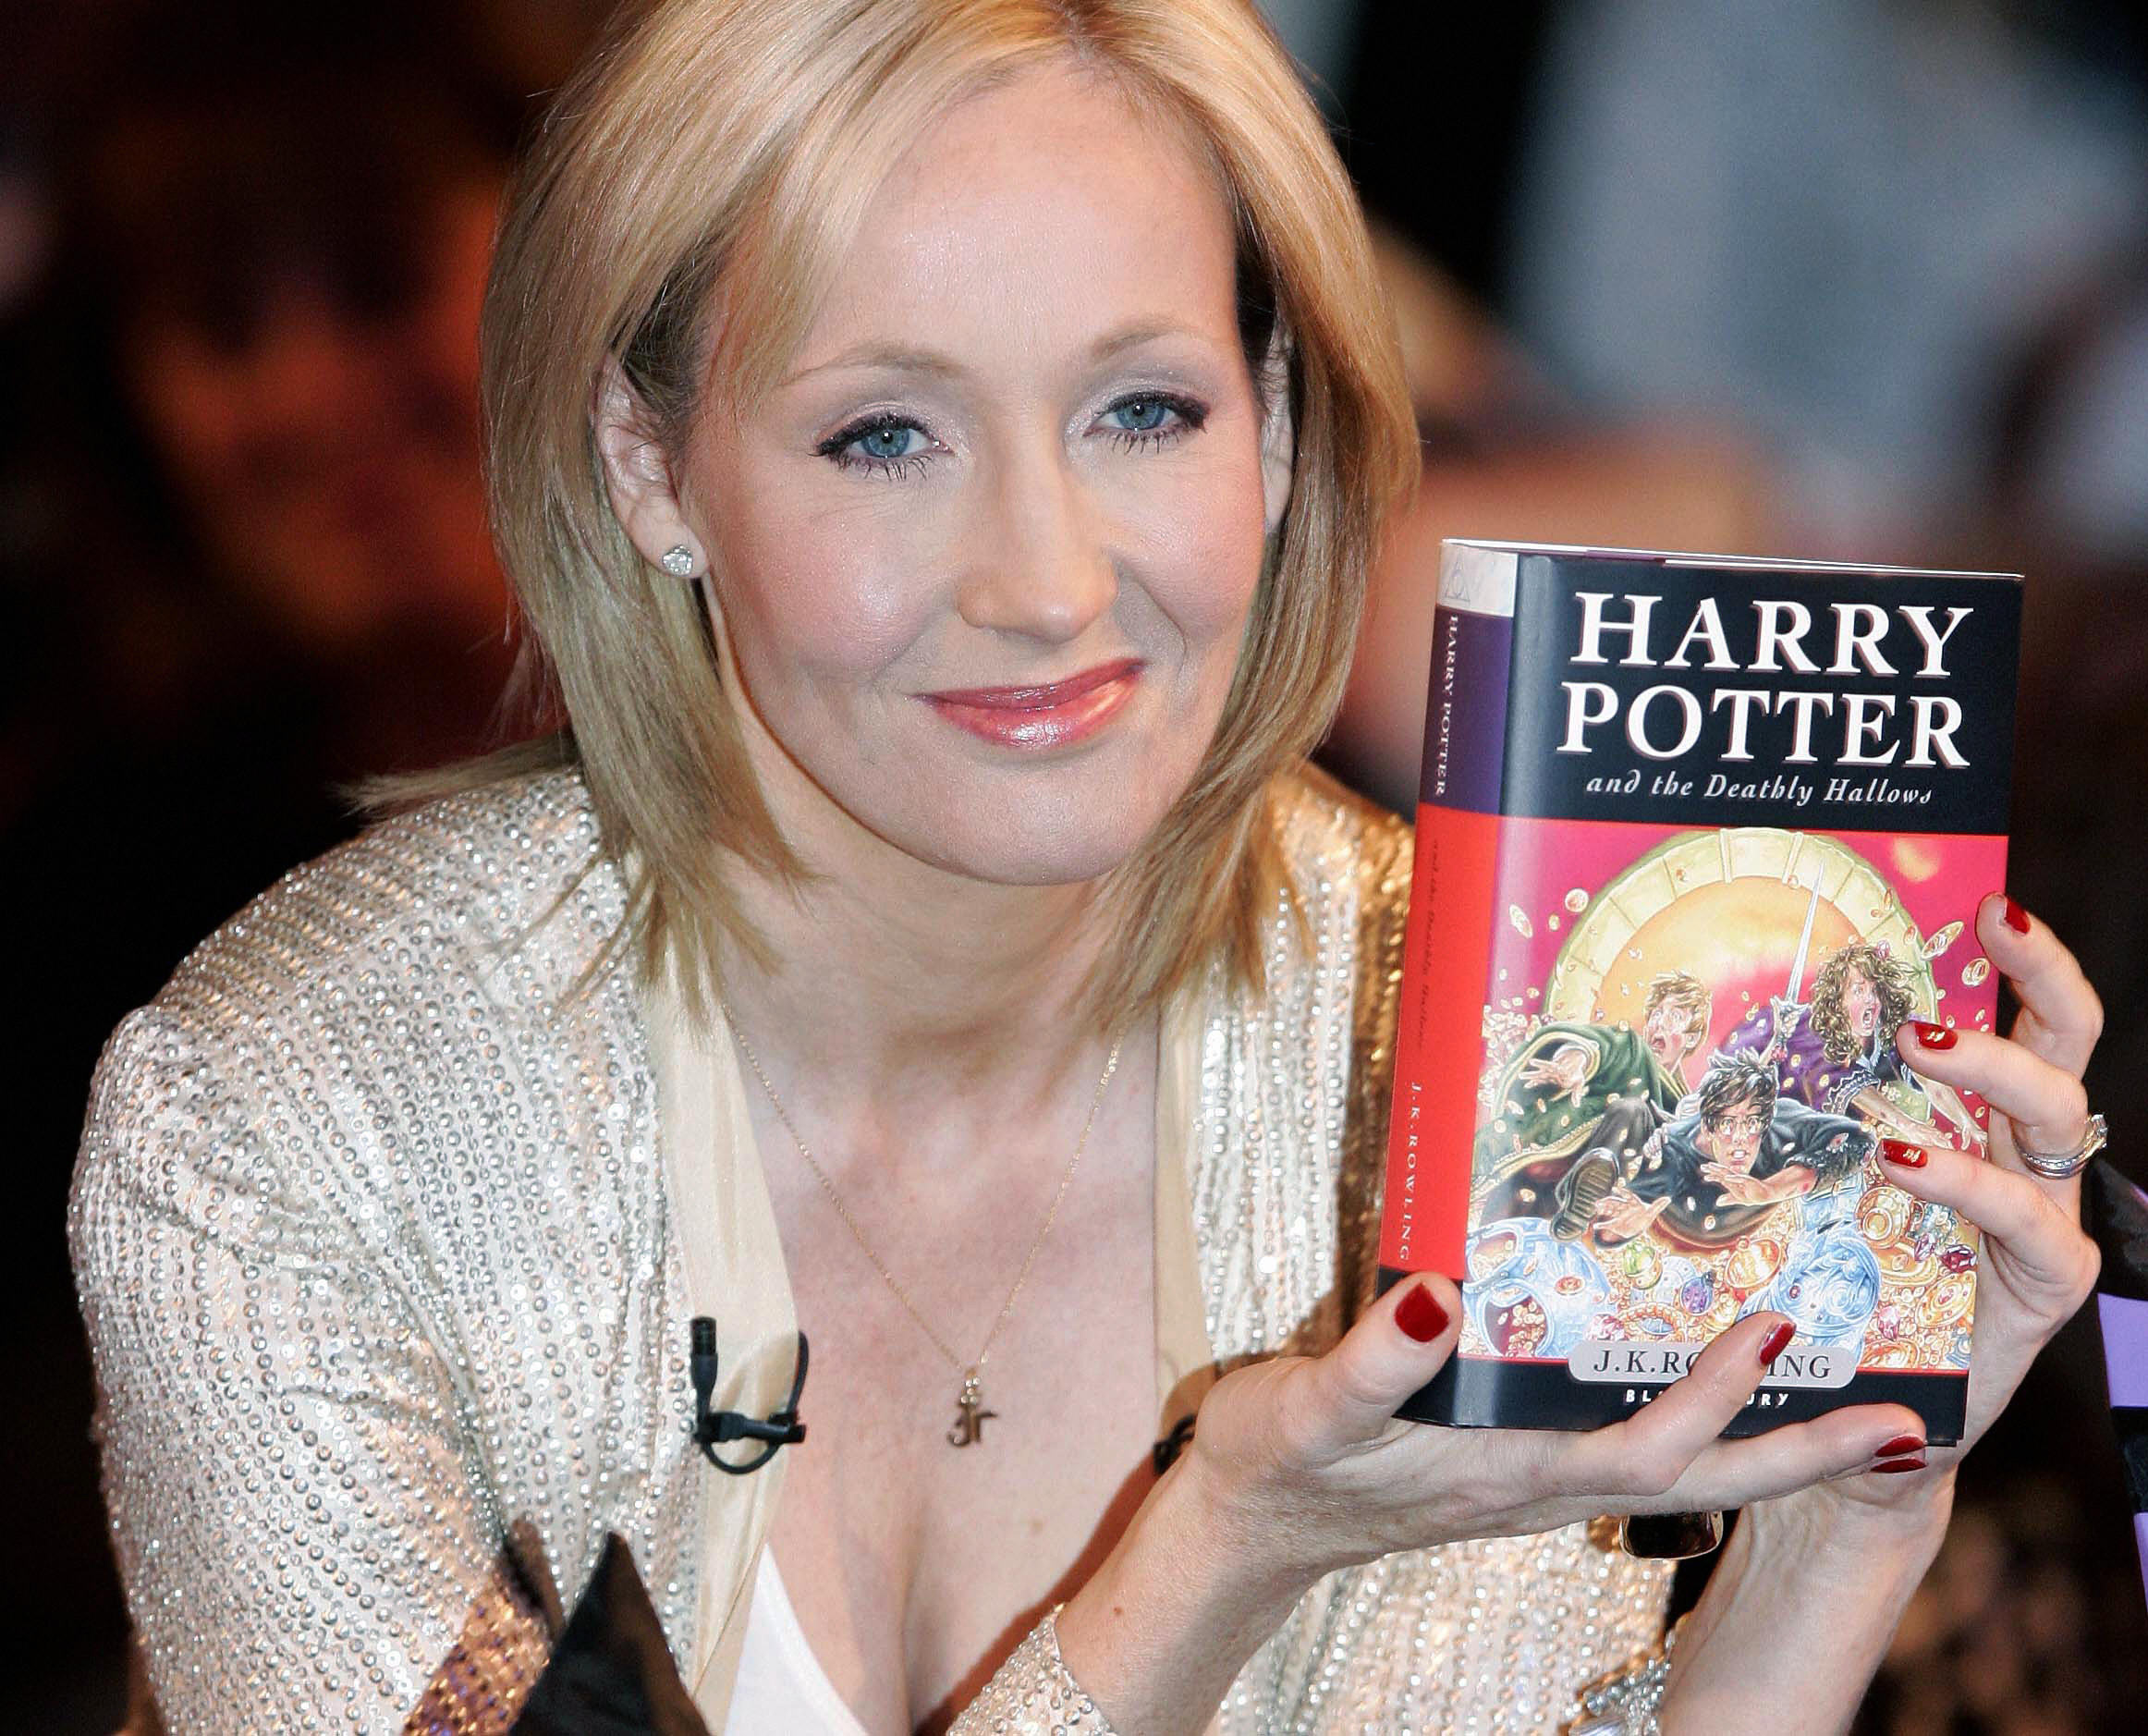 Jk rowling reveals the film that inspired the deathly hallows jk rowling reveals the film that inspired the deathly hallows symbol radio times biocorpaavc Gallery